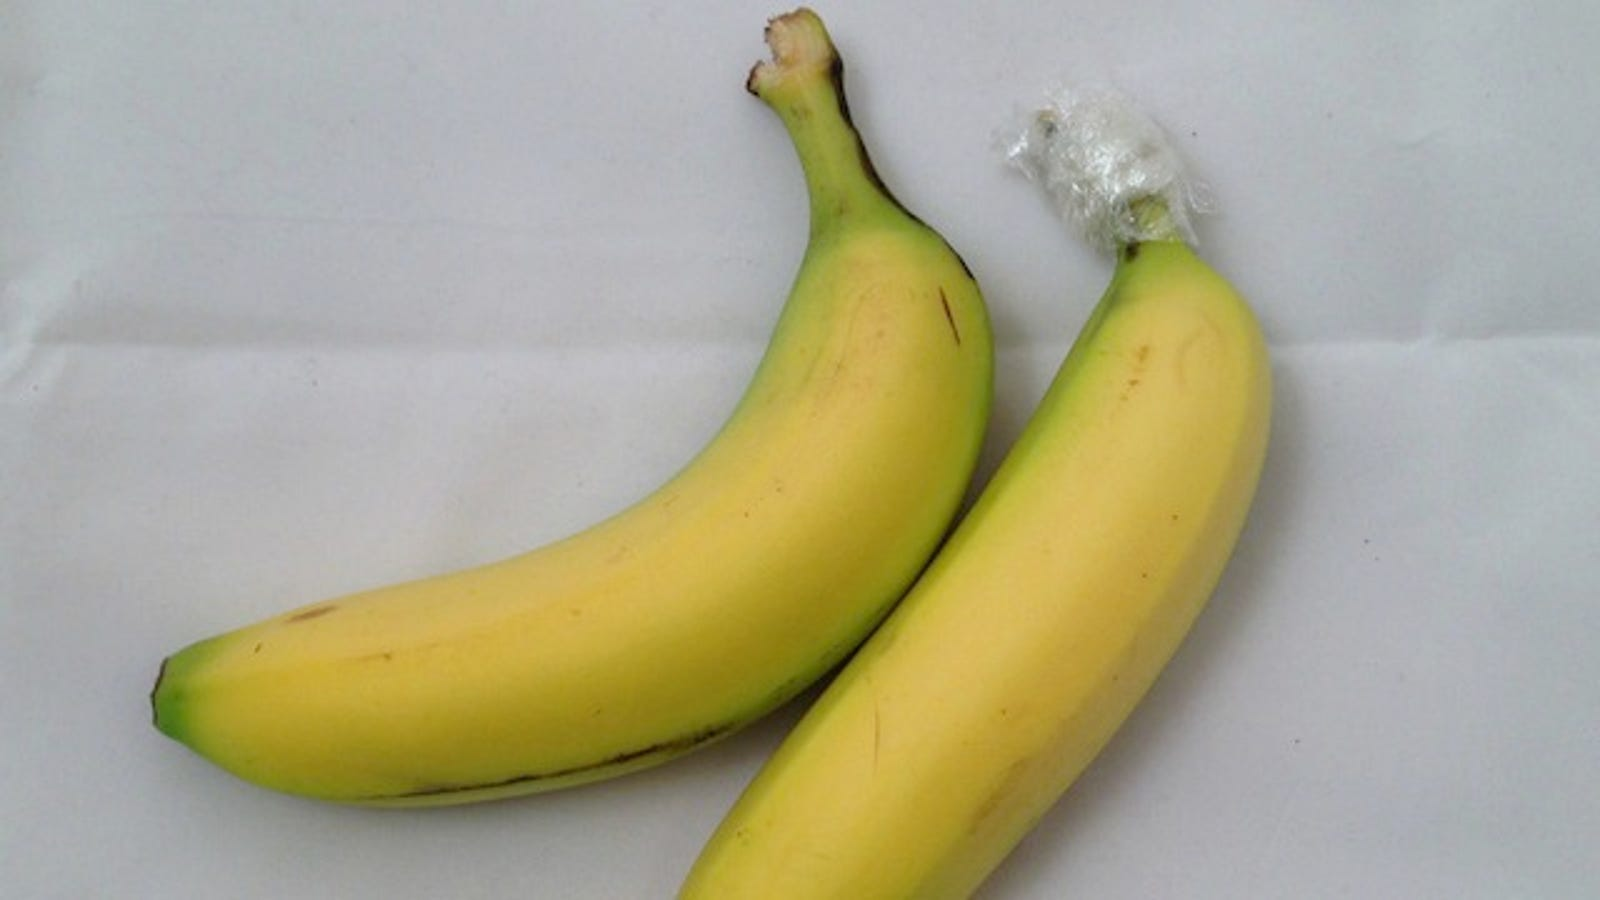 Keep Bananas Fresh Longer By Separating Them And Wring The Stems In Plastic Wrap